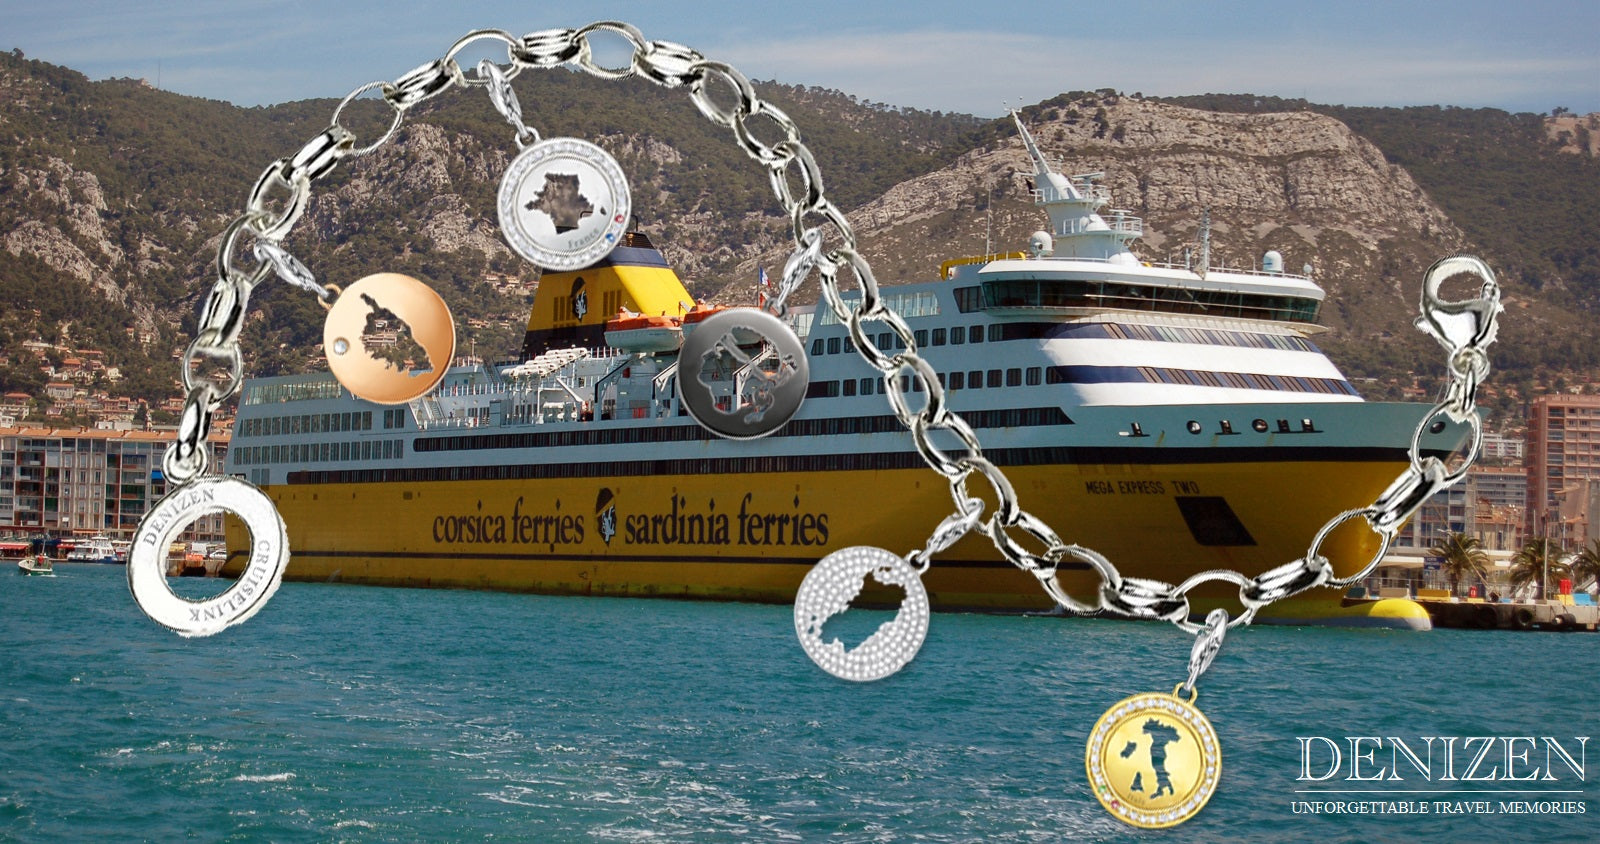 DENIZEN Bracelet Cruiselink charms sold on board cruise lines